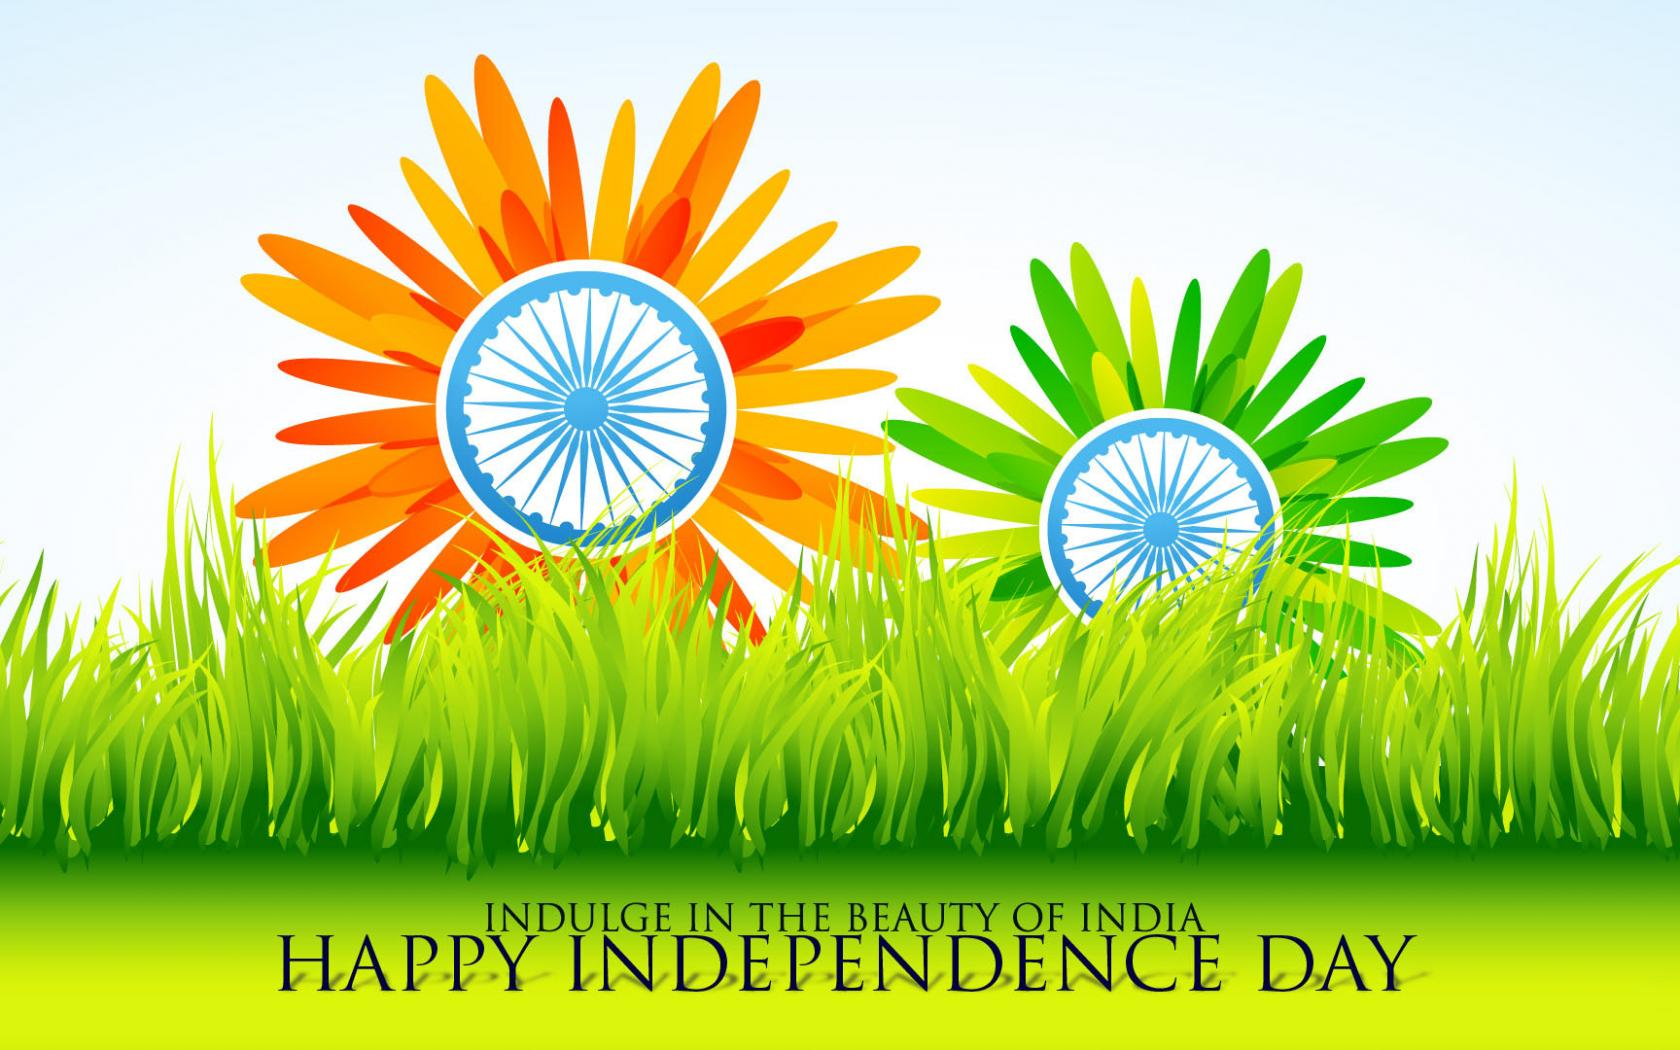 Independence Day Mobile Wallpapers: Indian Independence Day Images With Nature Theme